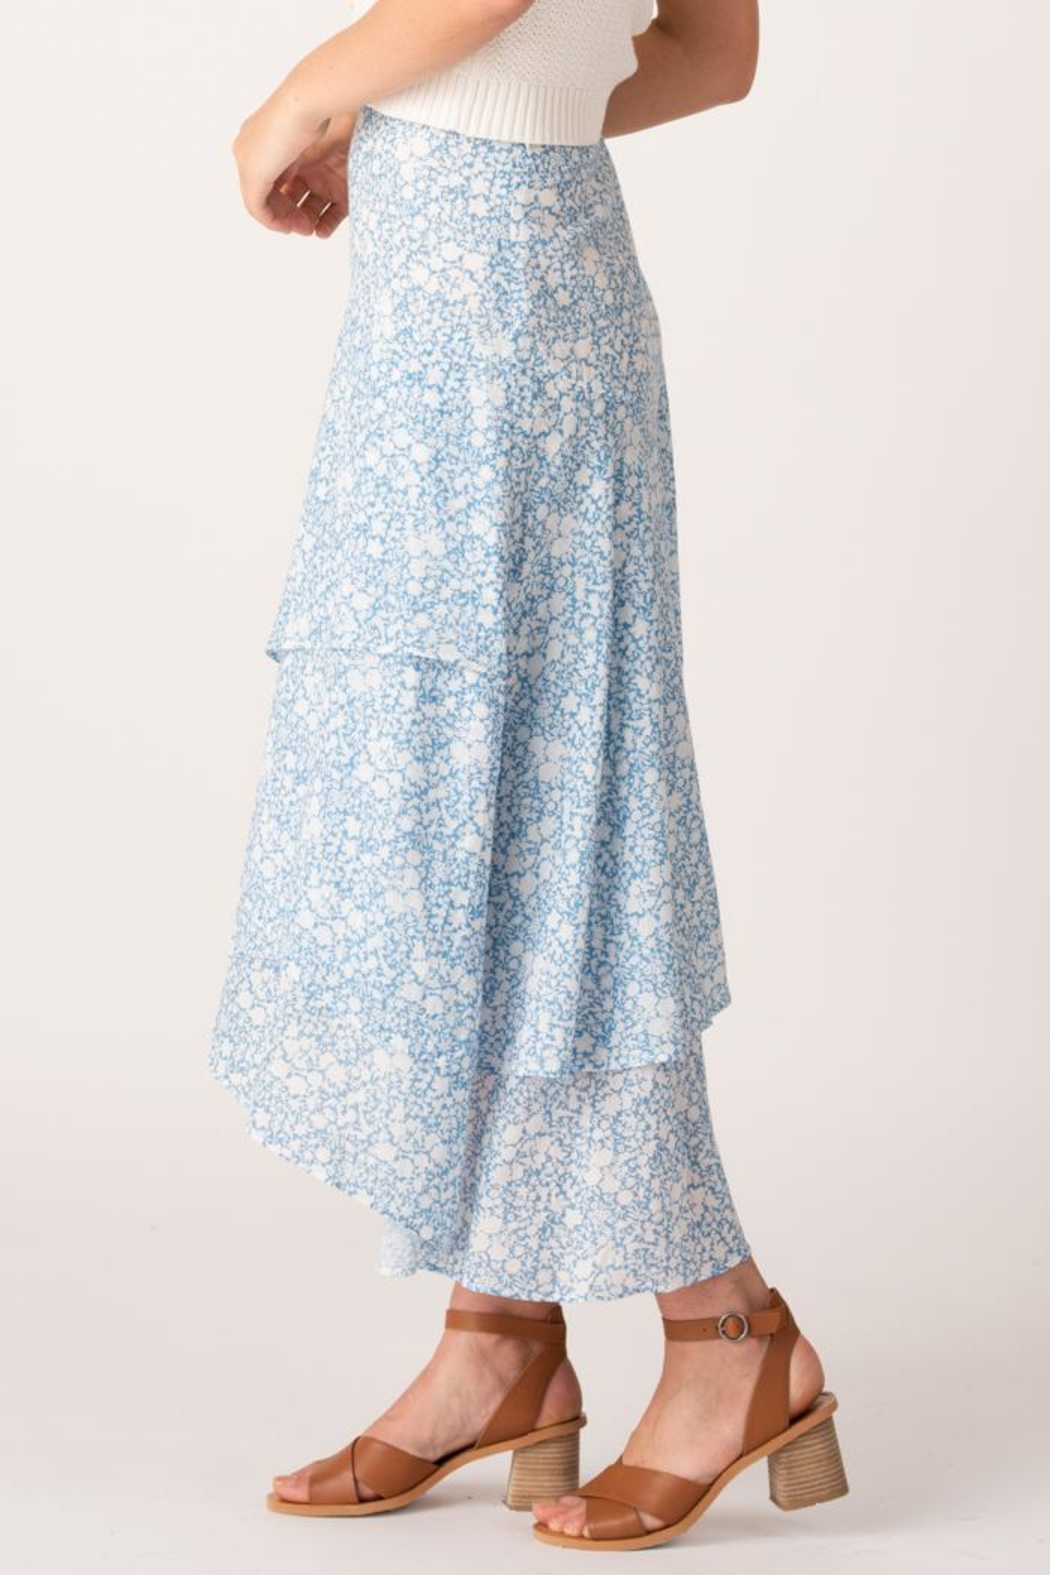 Margaret O'Leary Sonia Tiered Skirt - Front Full Image